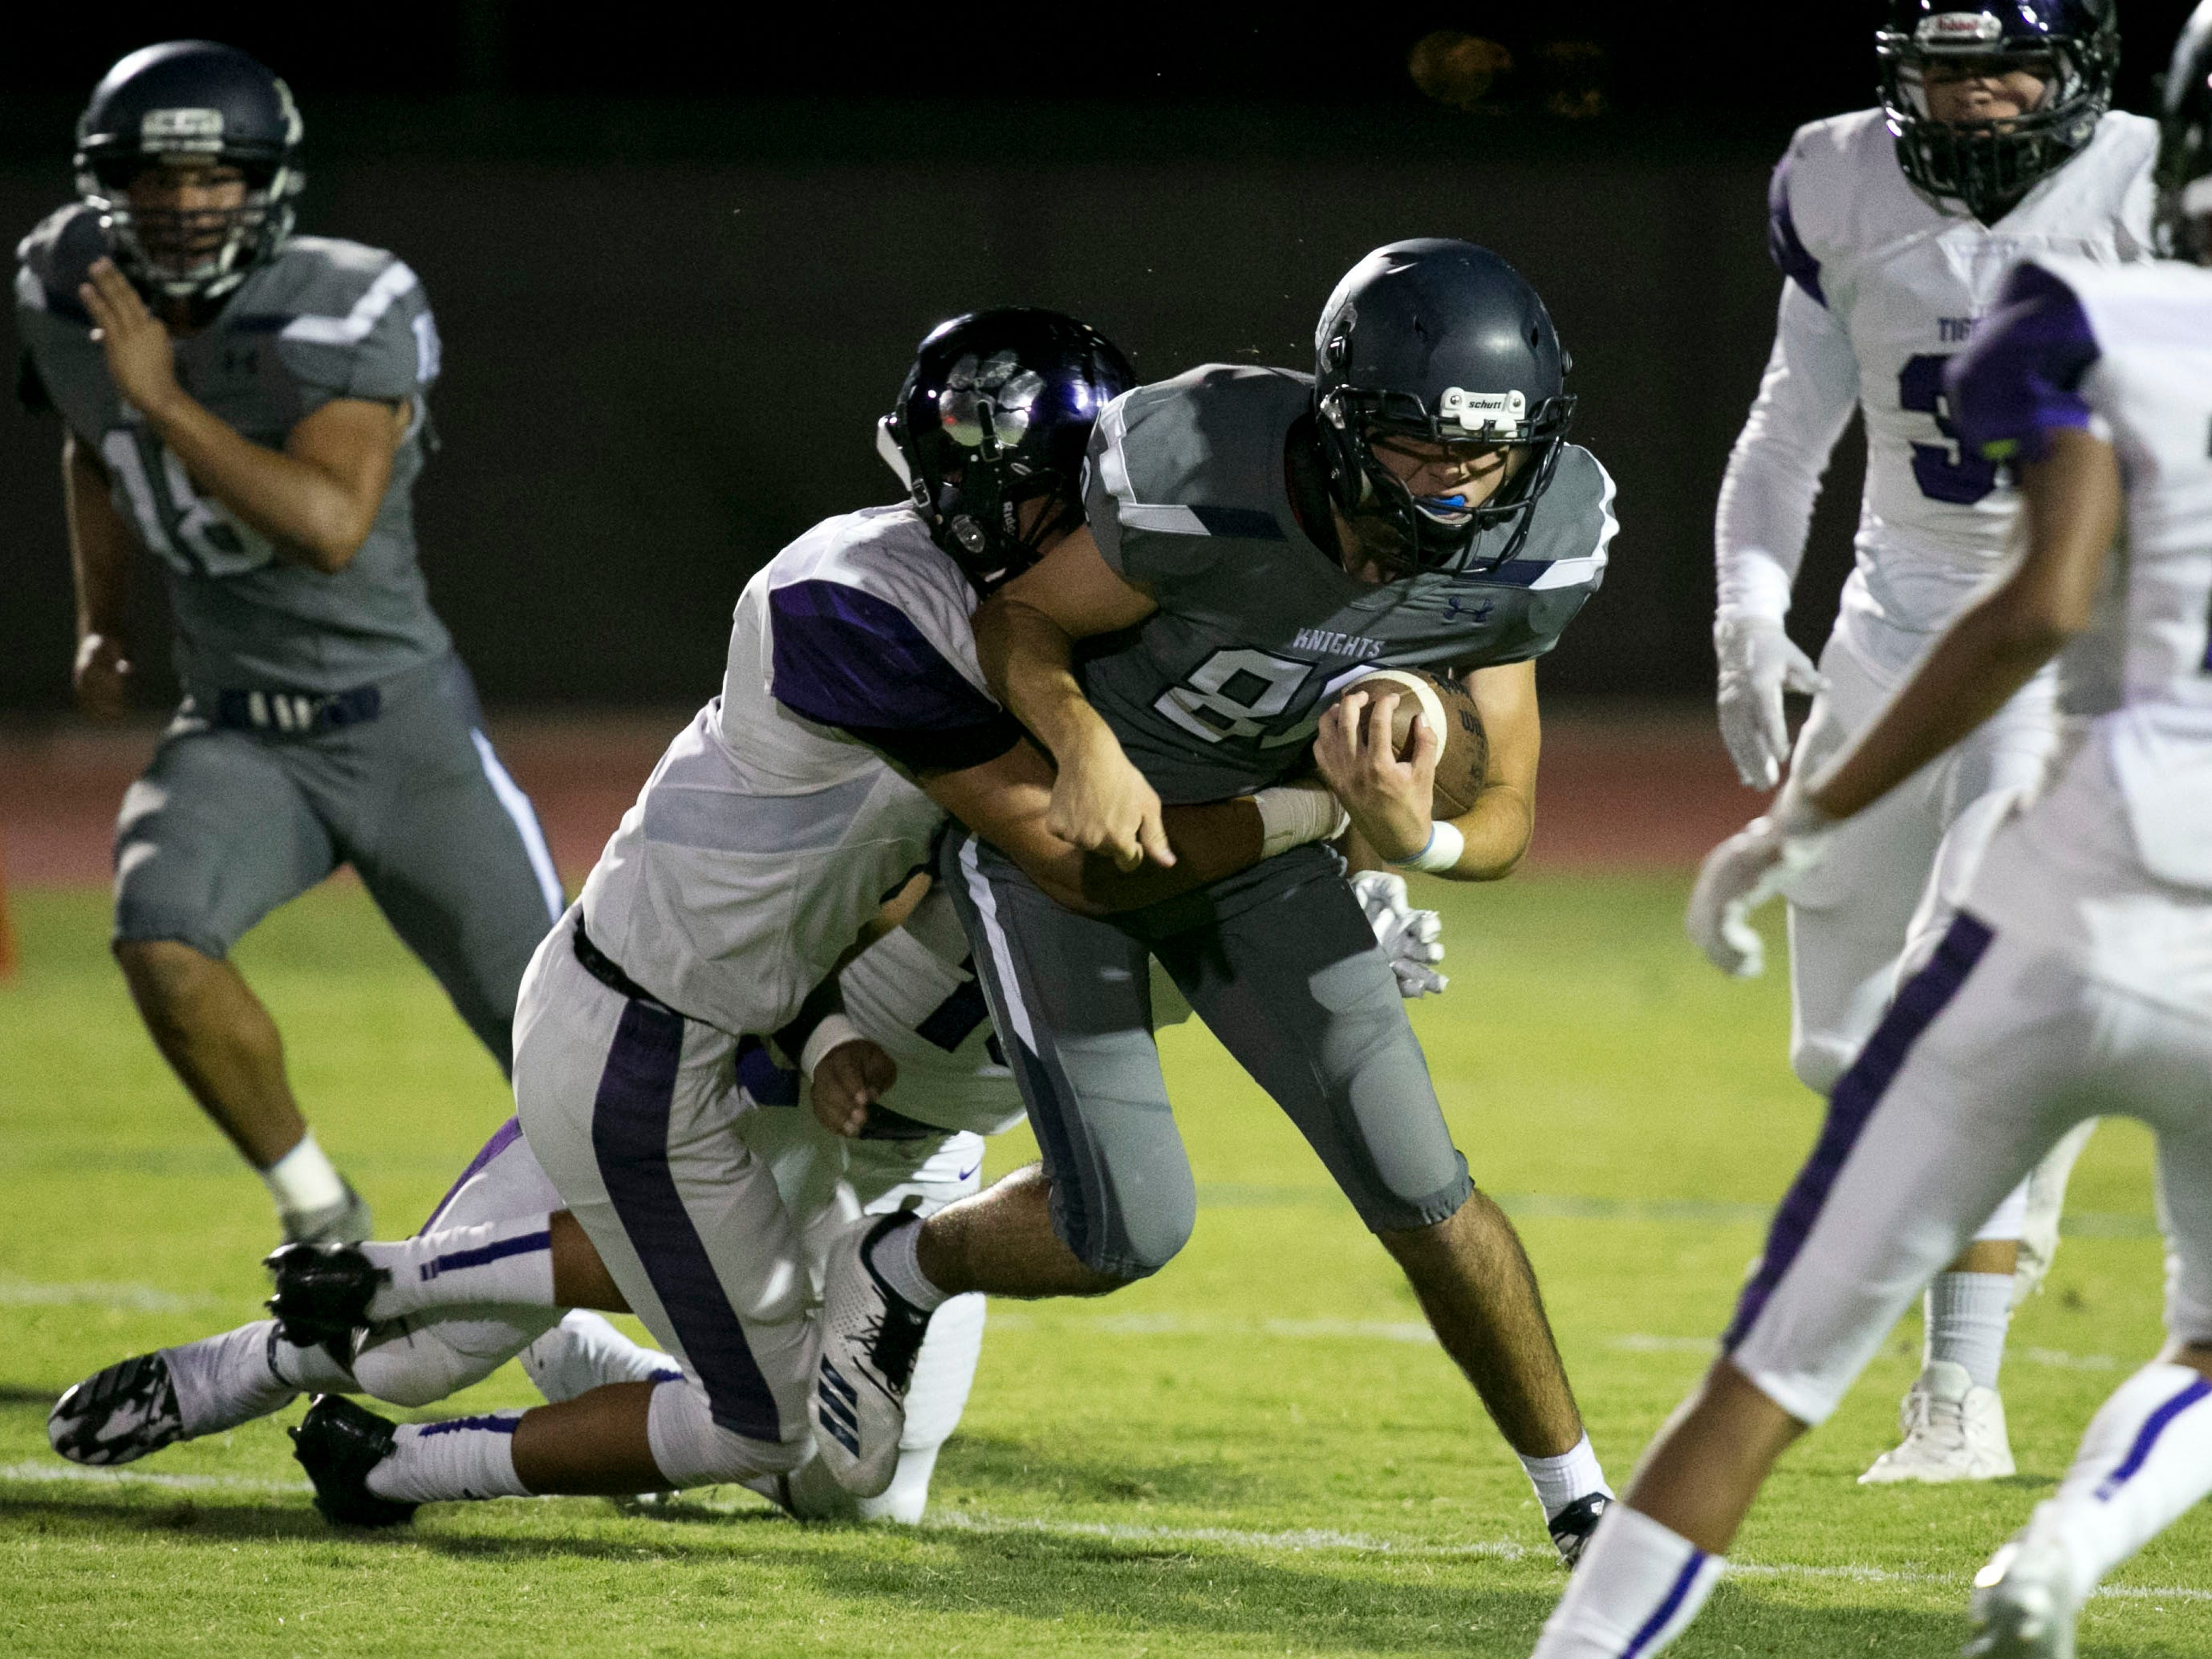 Higley High receiver Jaxen Gibbons is tackled by a Millennium High defender during the first quarter of the high school football game at Higley High in Gilbert on Friday evening, September 14, 2018.